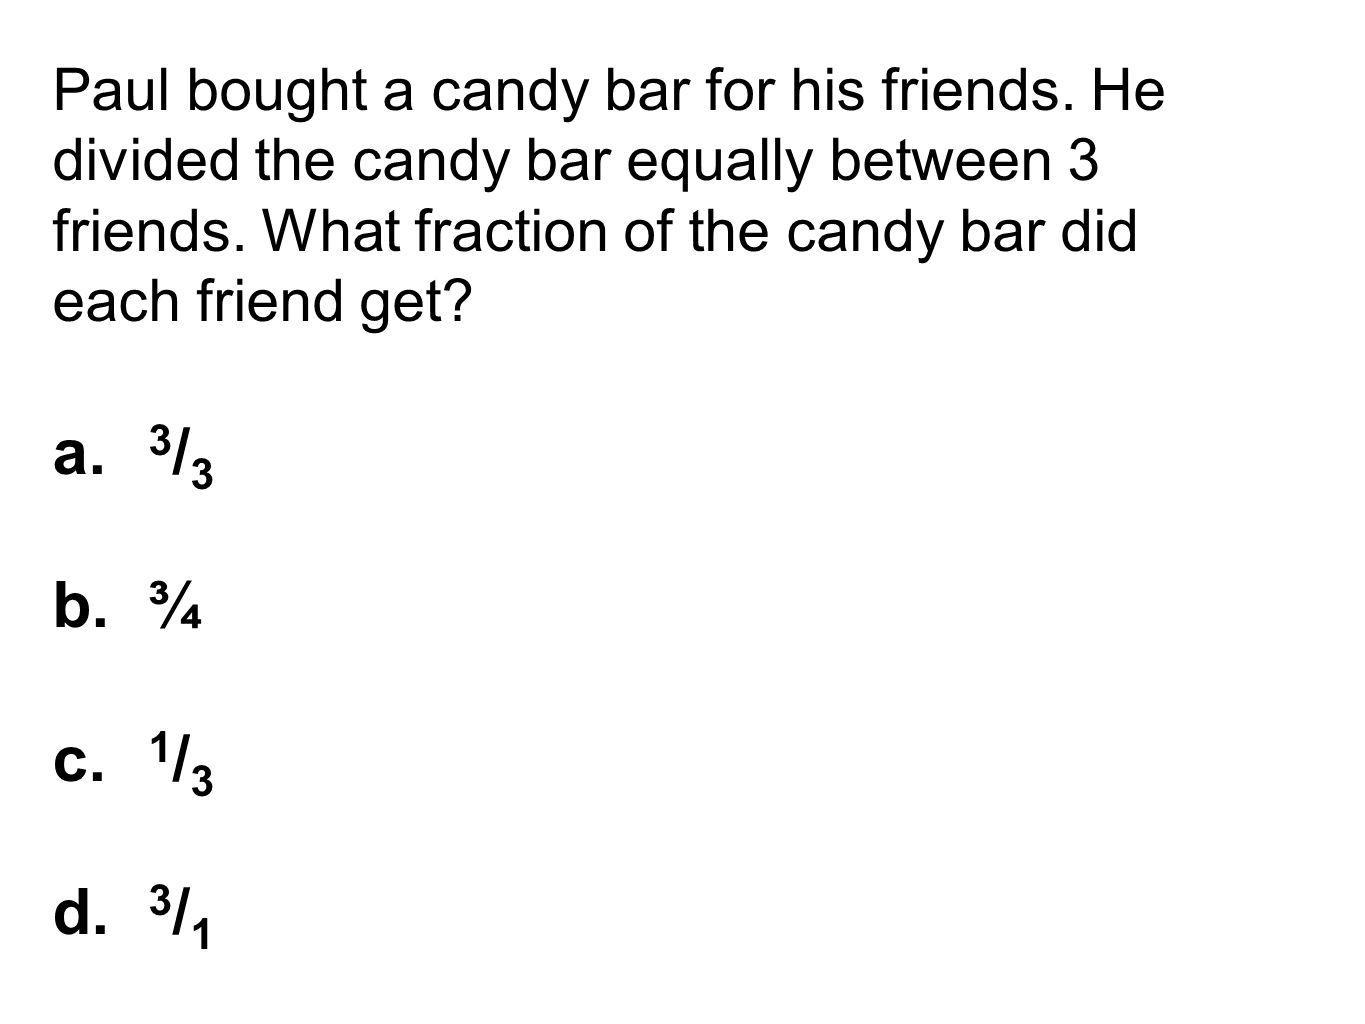 Paul bought a candy bar for his friends. He divided the candy bar equally between 3 friends. What fraction of the candy bar did each friend get? a. 3